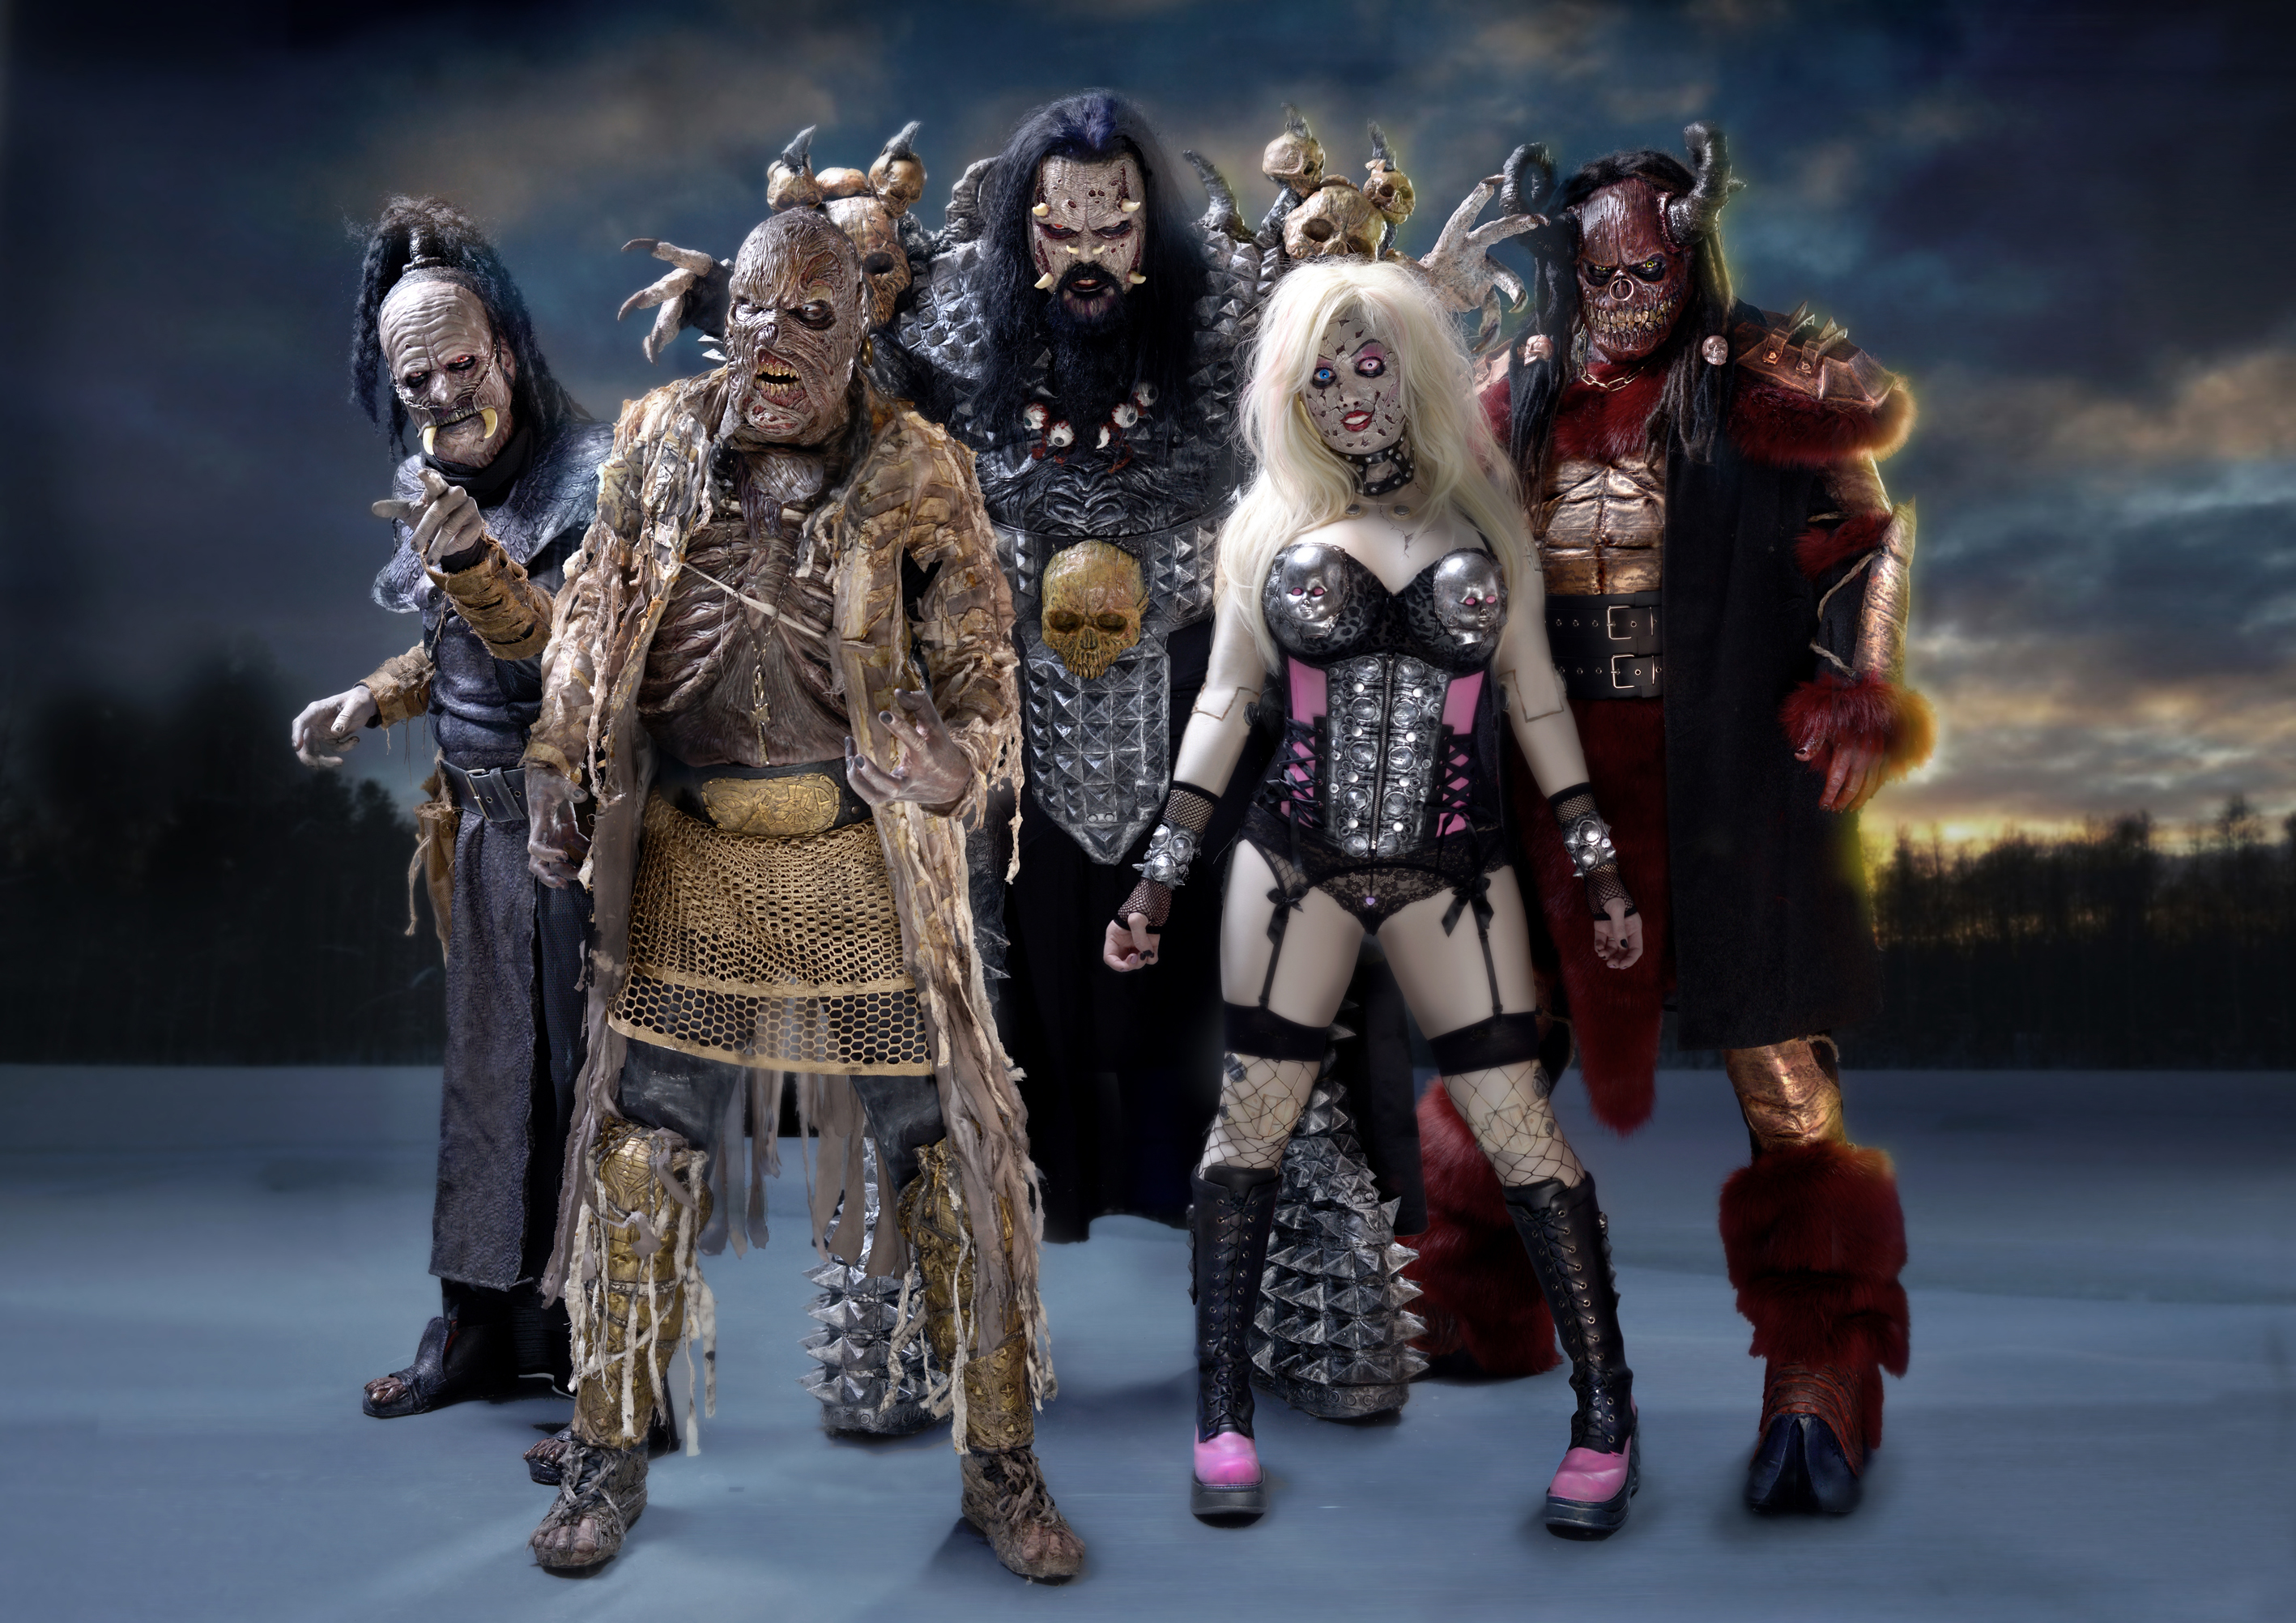 Lordi Release Their New Album Sexorcism On 25th May On